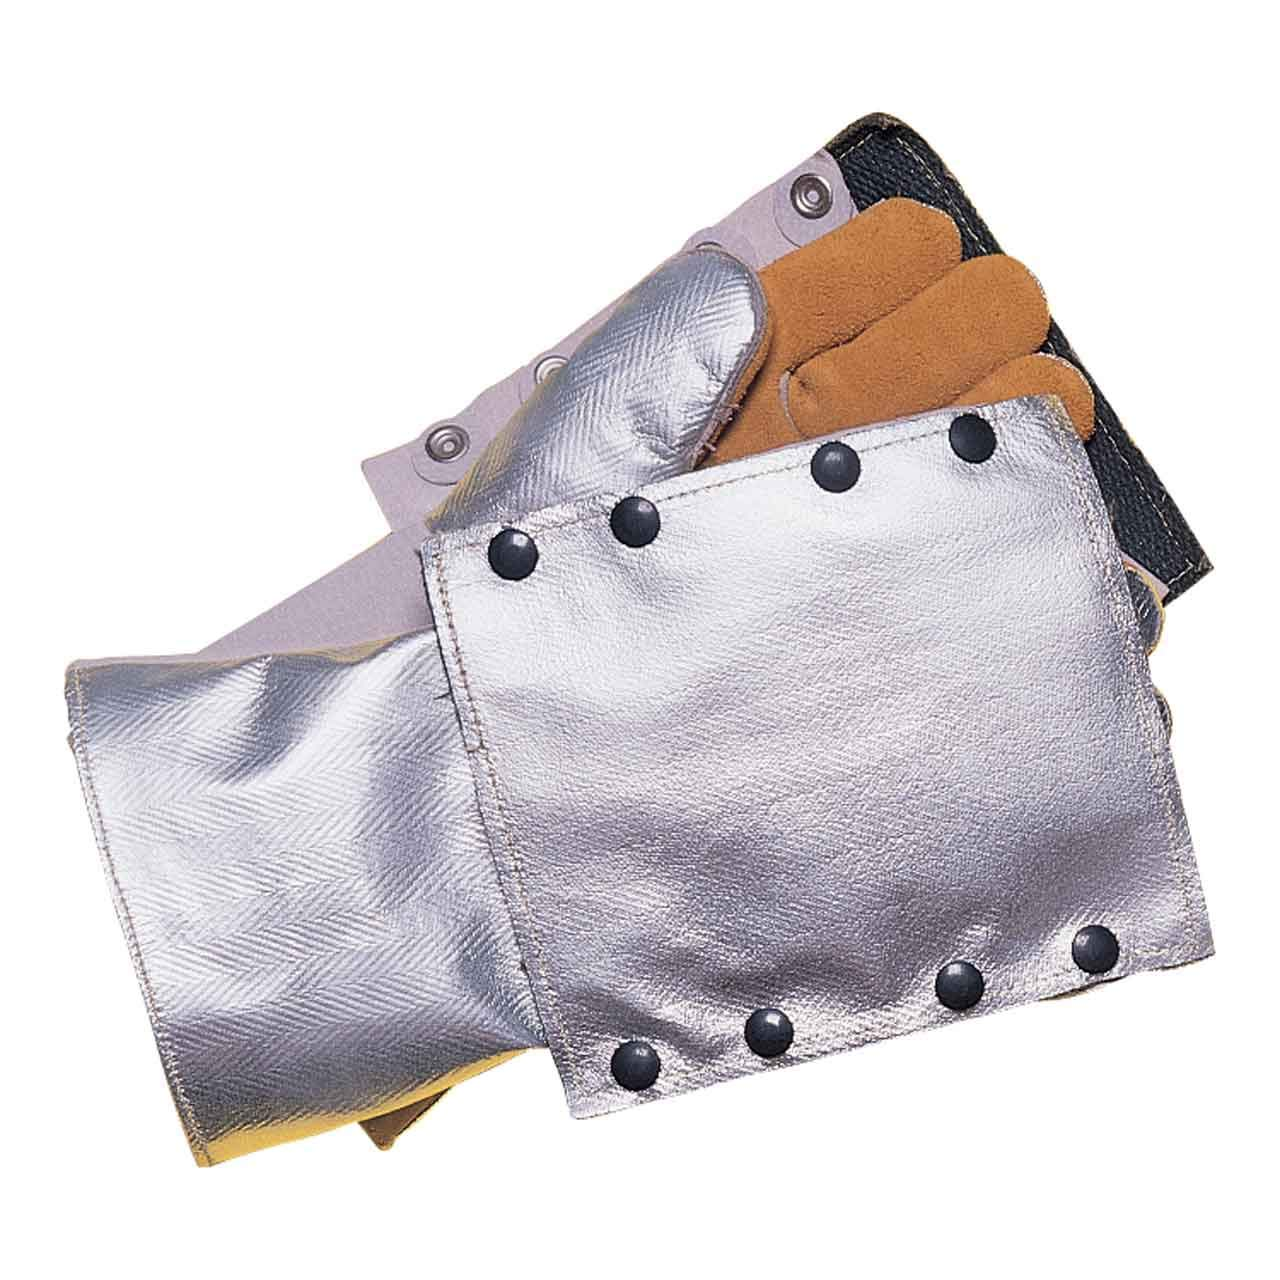 John Tillman and Co 820BHP Leather and Aluminized Rayon Wool Lined Aluminized Welding Glove with Gauntlet Cuff, Silver/Brown